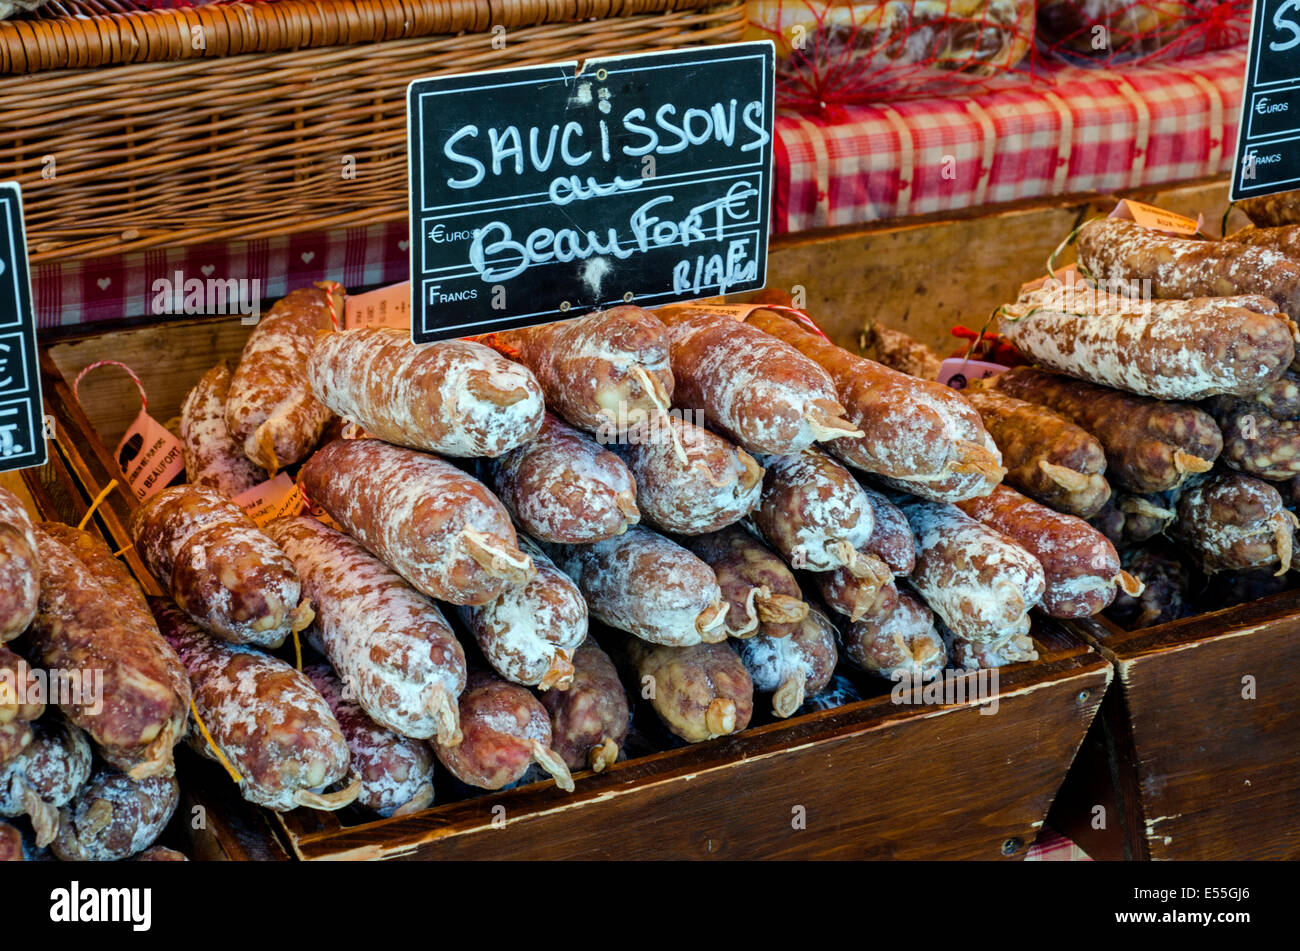 Saucisson au Beaufort, a traditional Savoy sausage flavoured with Beaufort cheese, on a stall in Chamonix, Haute - Stock Image